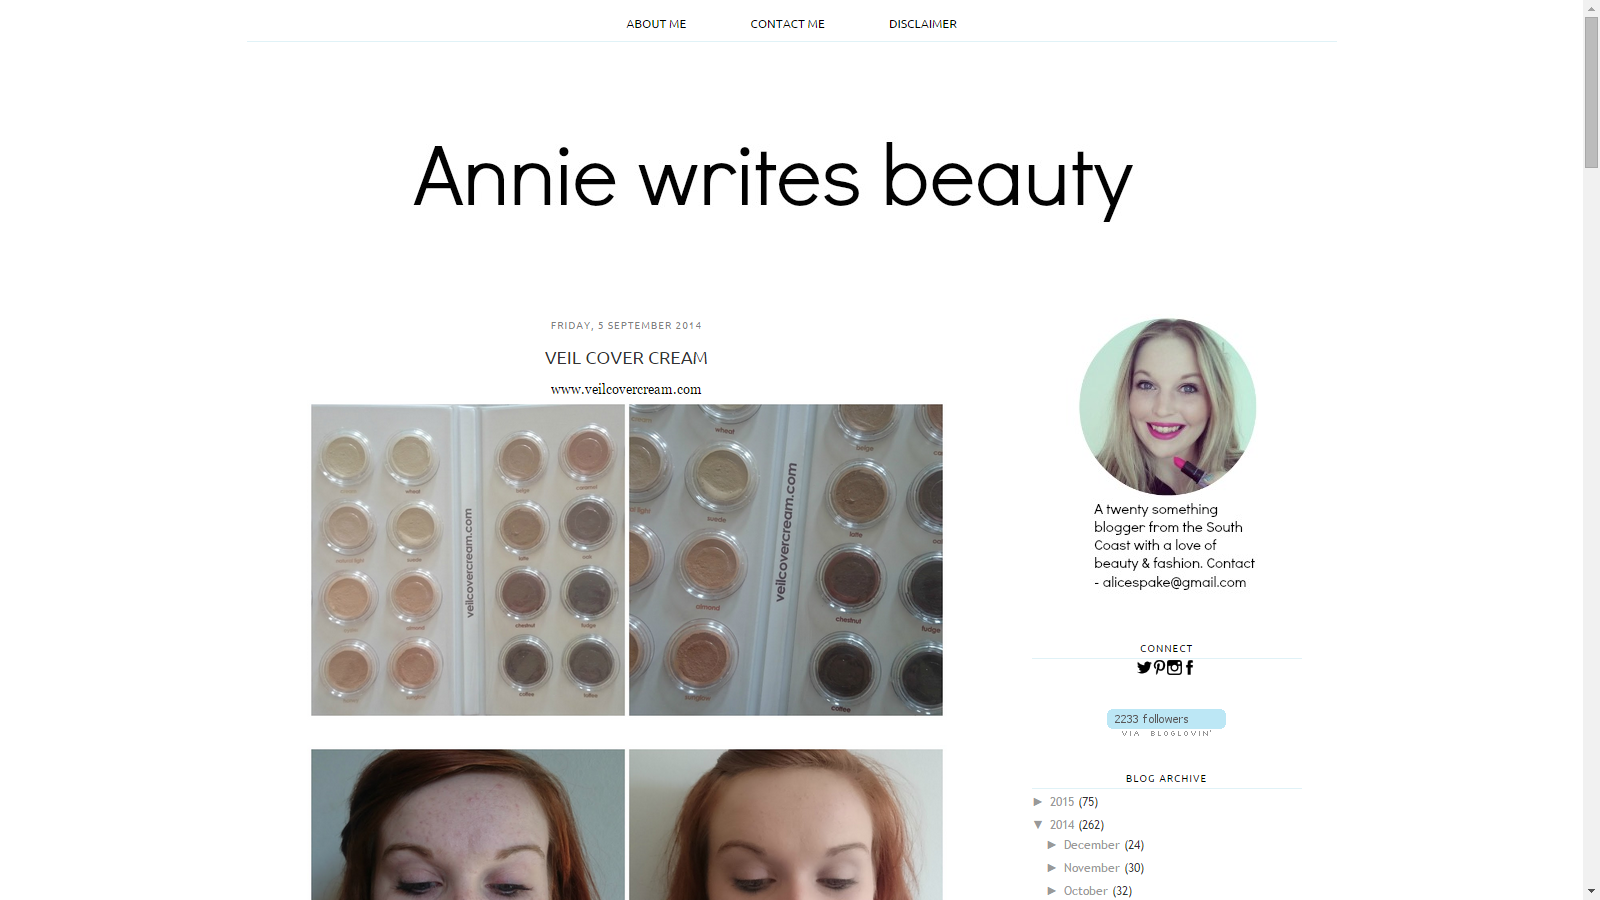 Blast From The Past: Veil Cover Cream Featured On Annie Writes Beauty